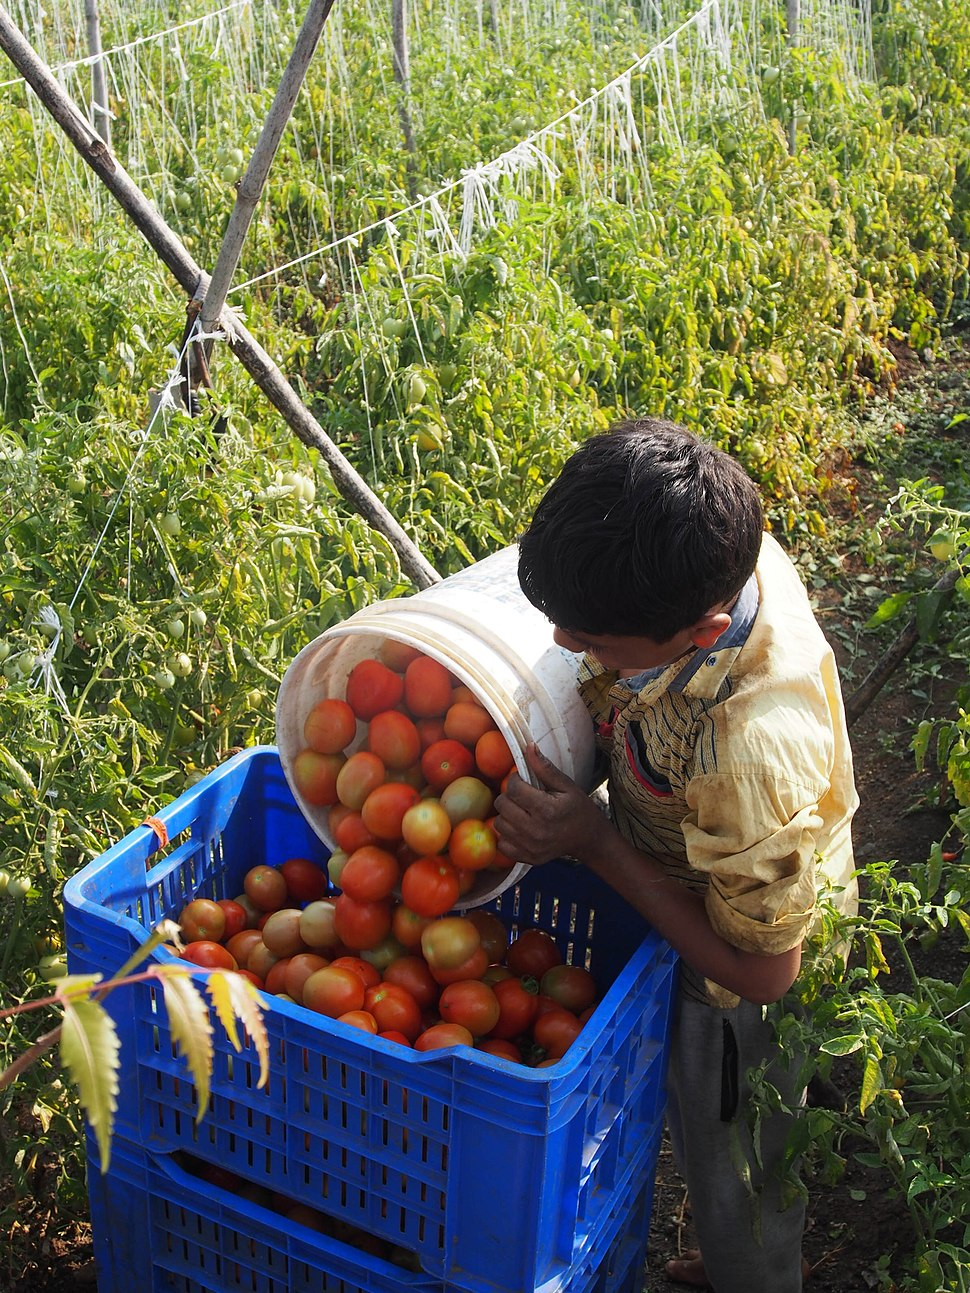 Collecting Tomatoes from field